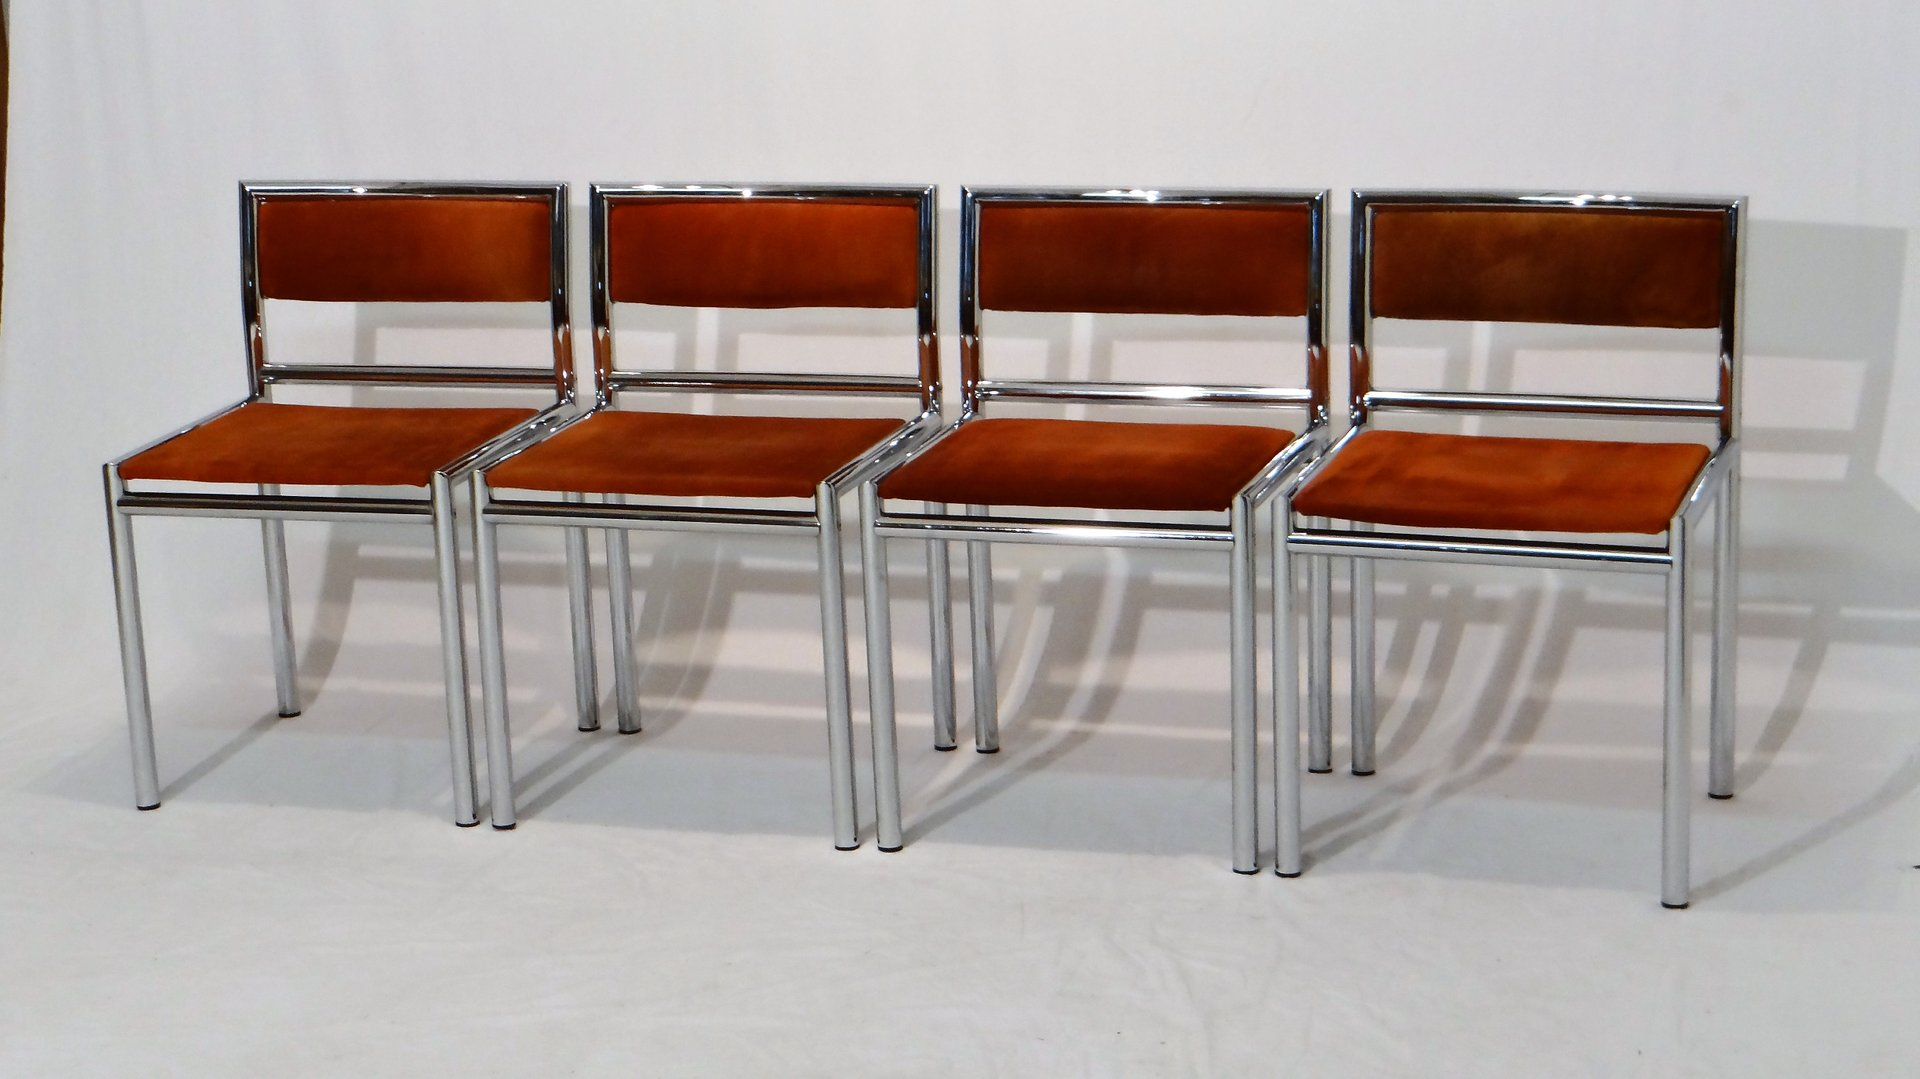 chrome dining chairs australia staples ergonomic office mid century in tubular and leather